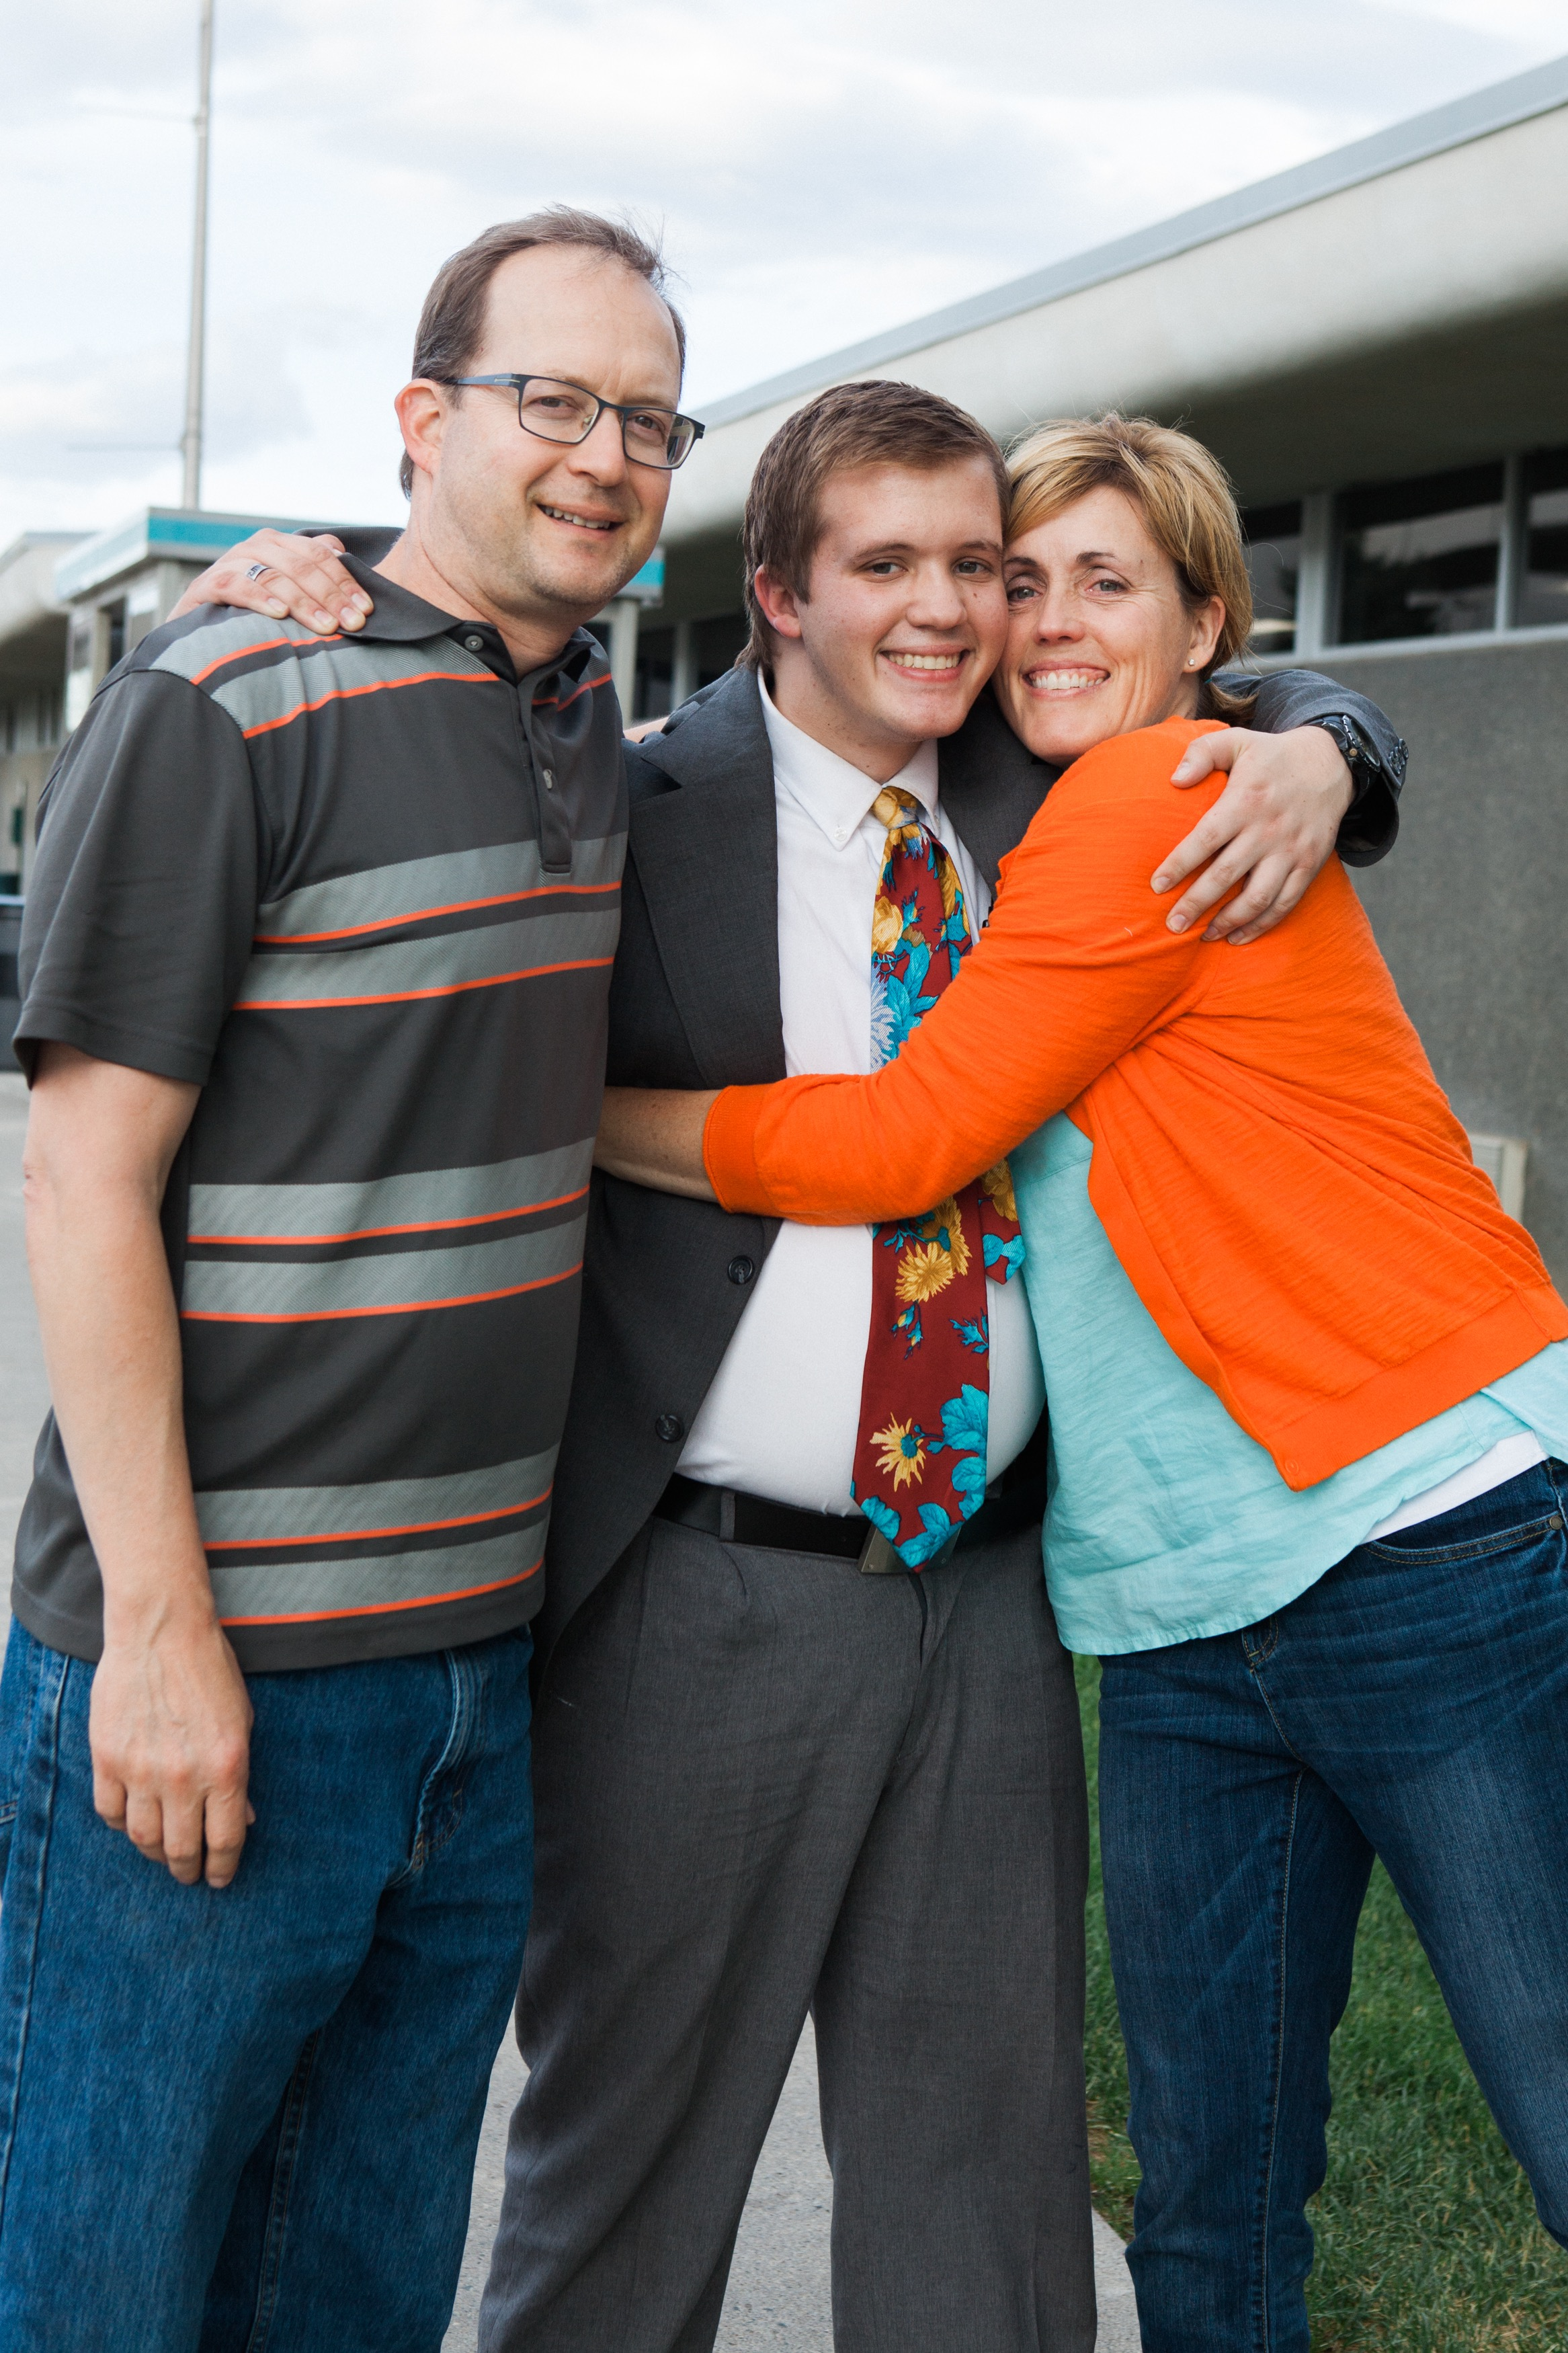 Greeting Chase at the Spokane airport on July 27th. He served an LDS mission for two years in the Missouri, St. Louis mission. So proud of him!